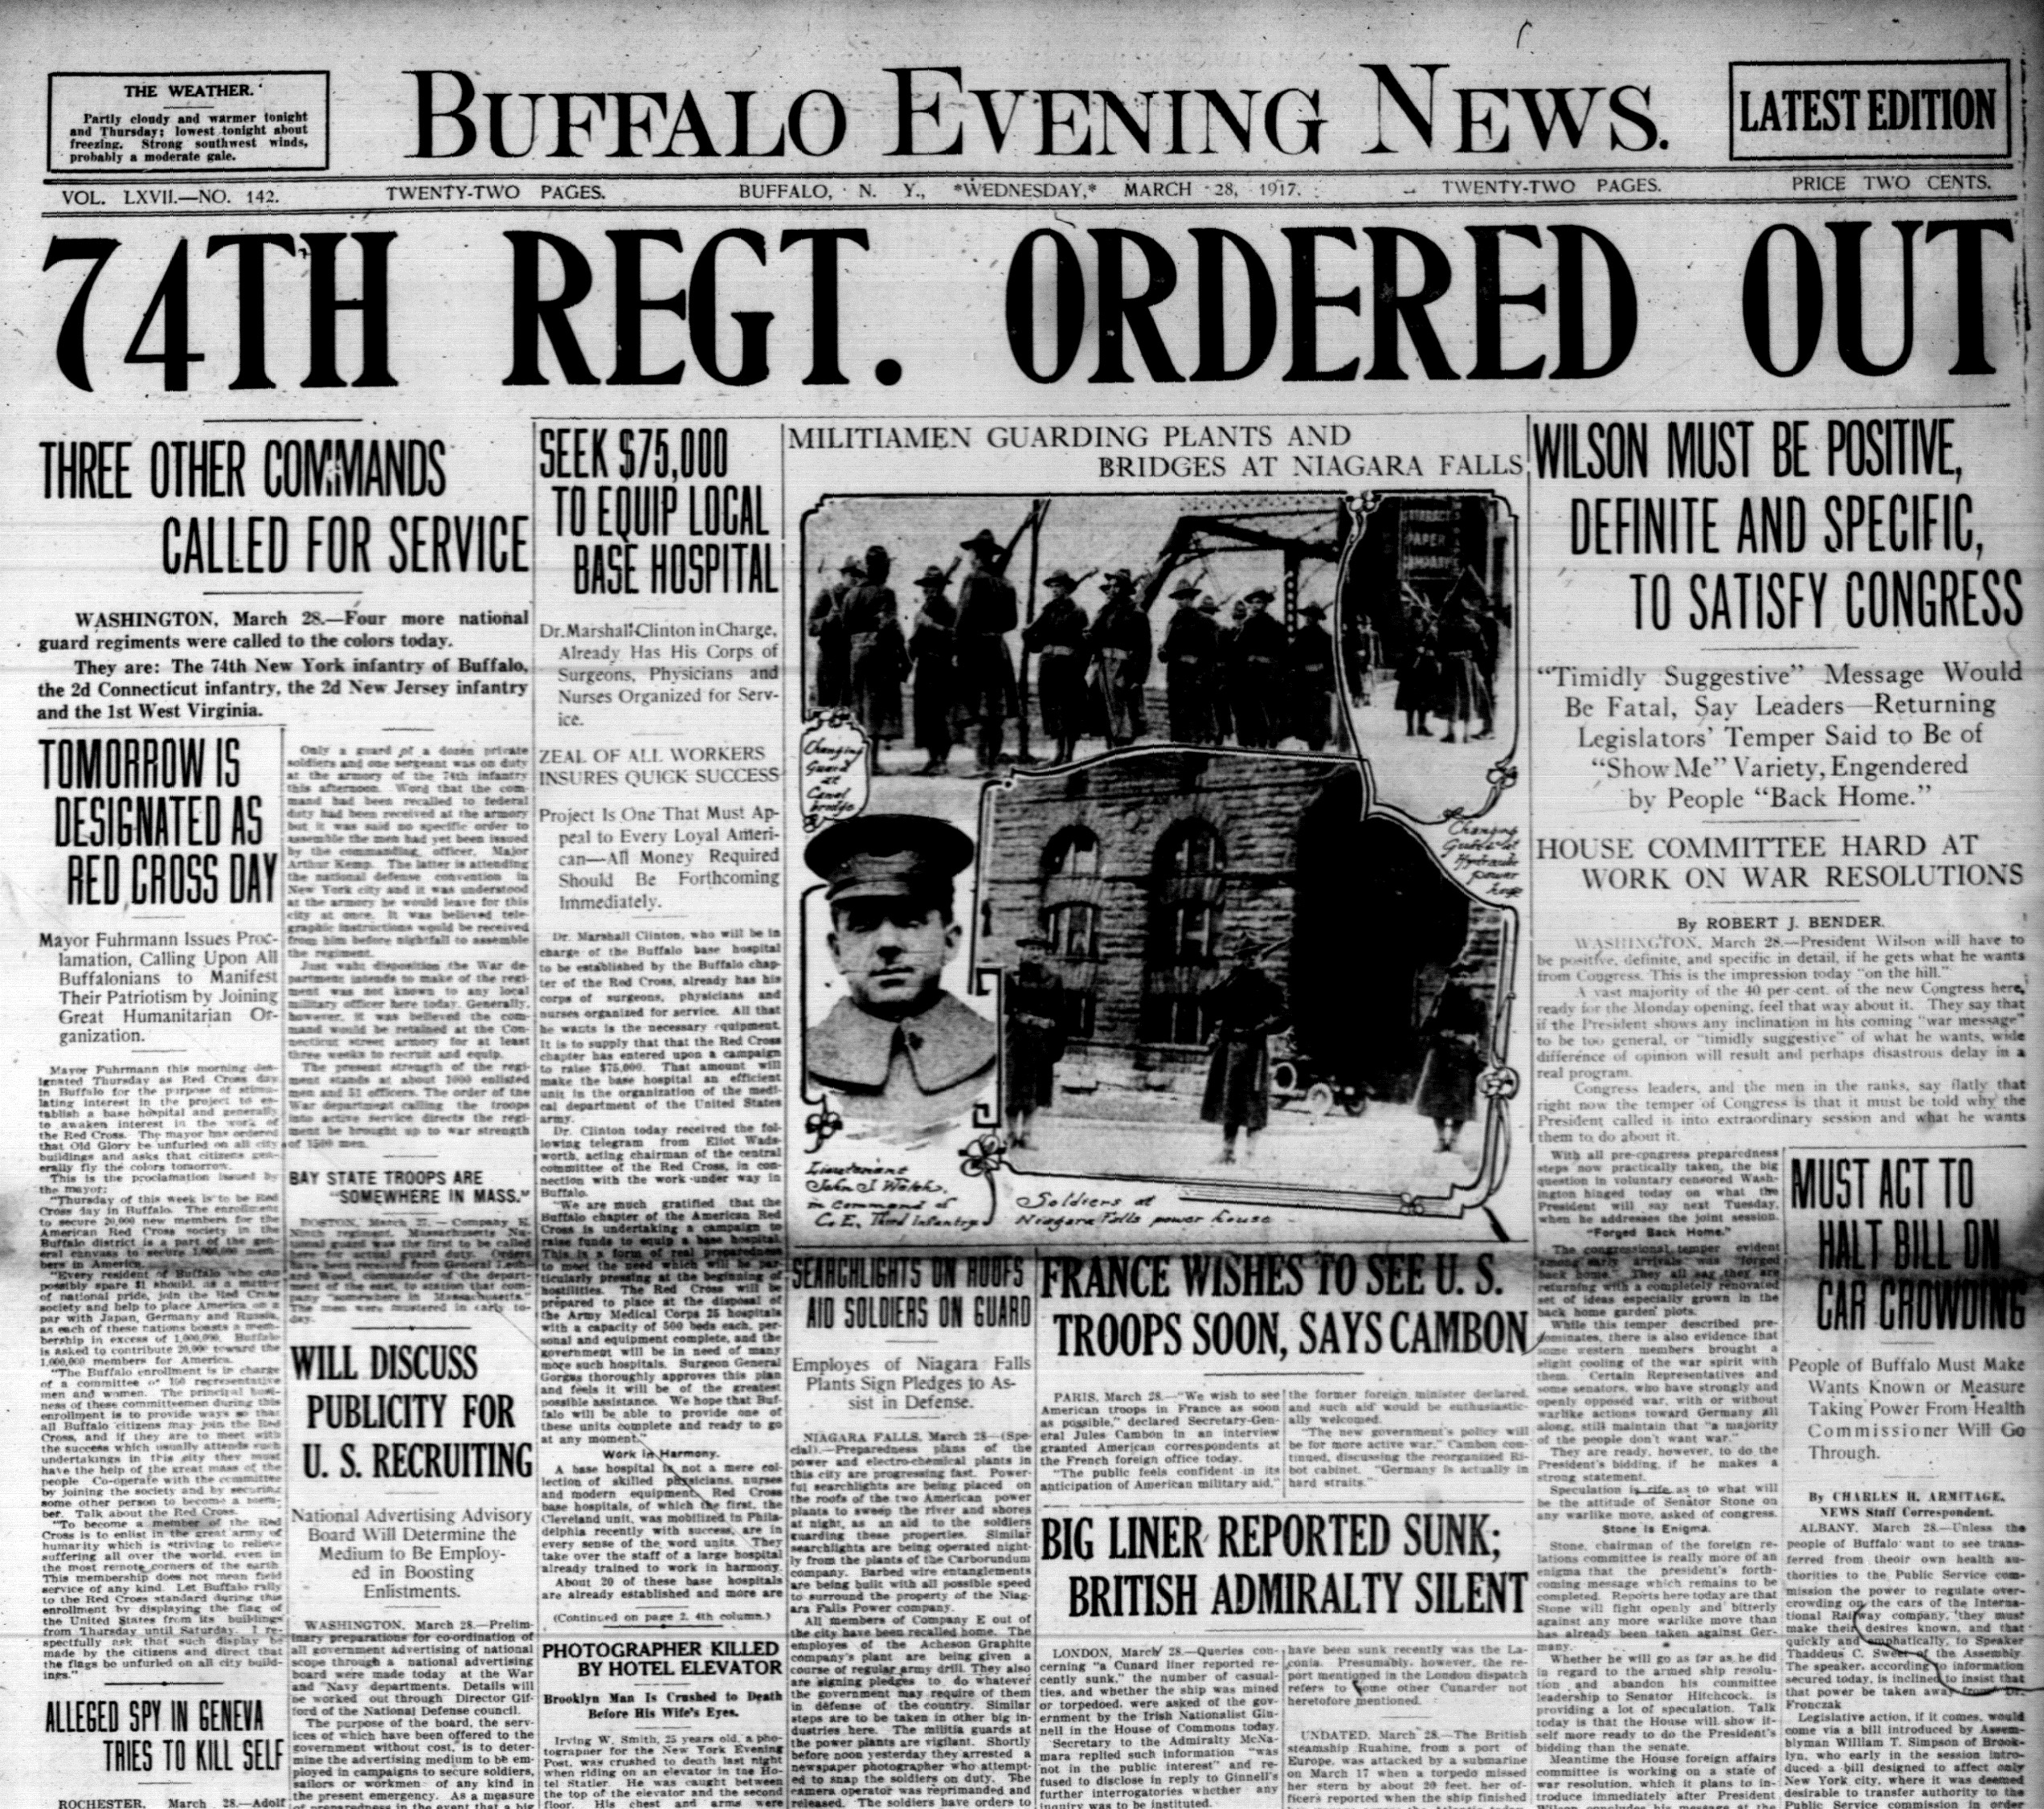 Front page, March 28, 1917: Man crushed to death by elevator